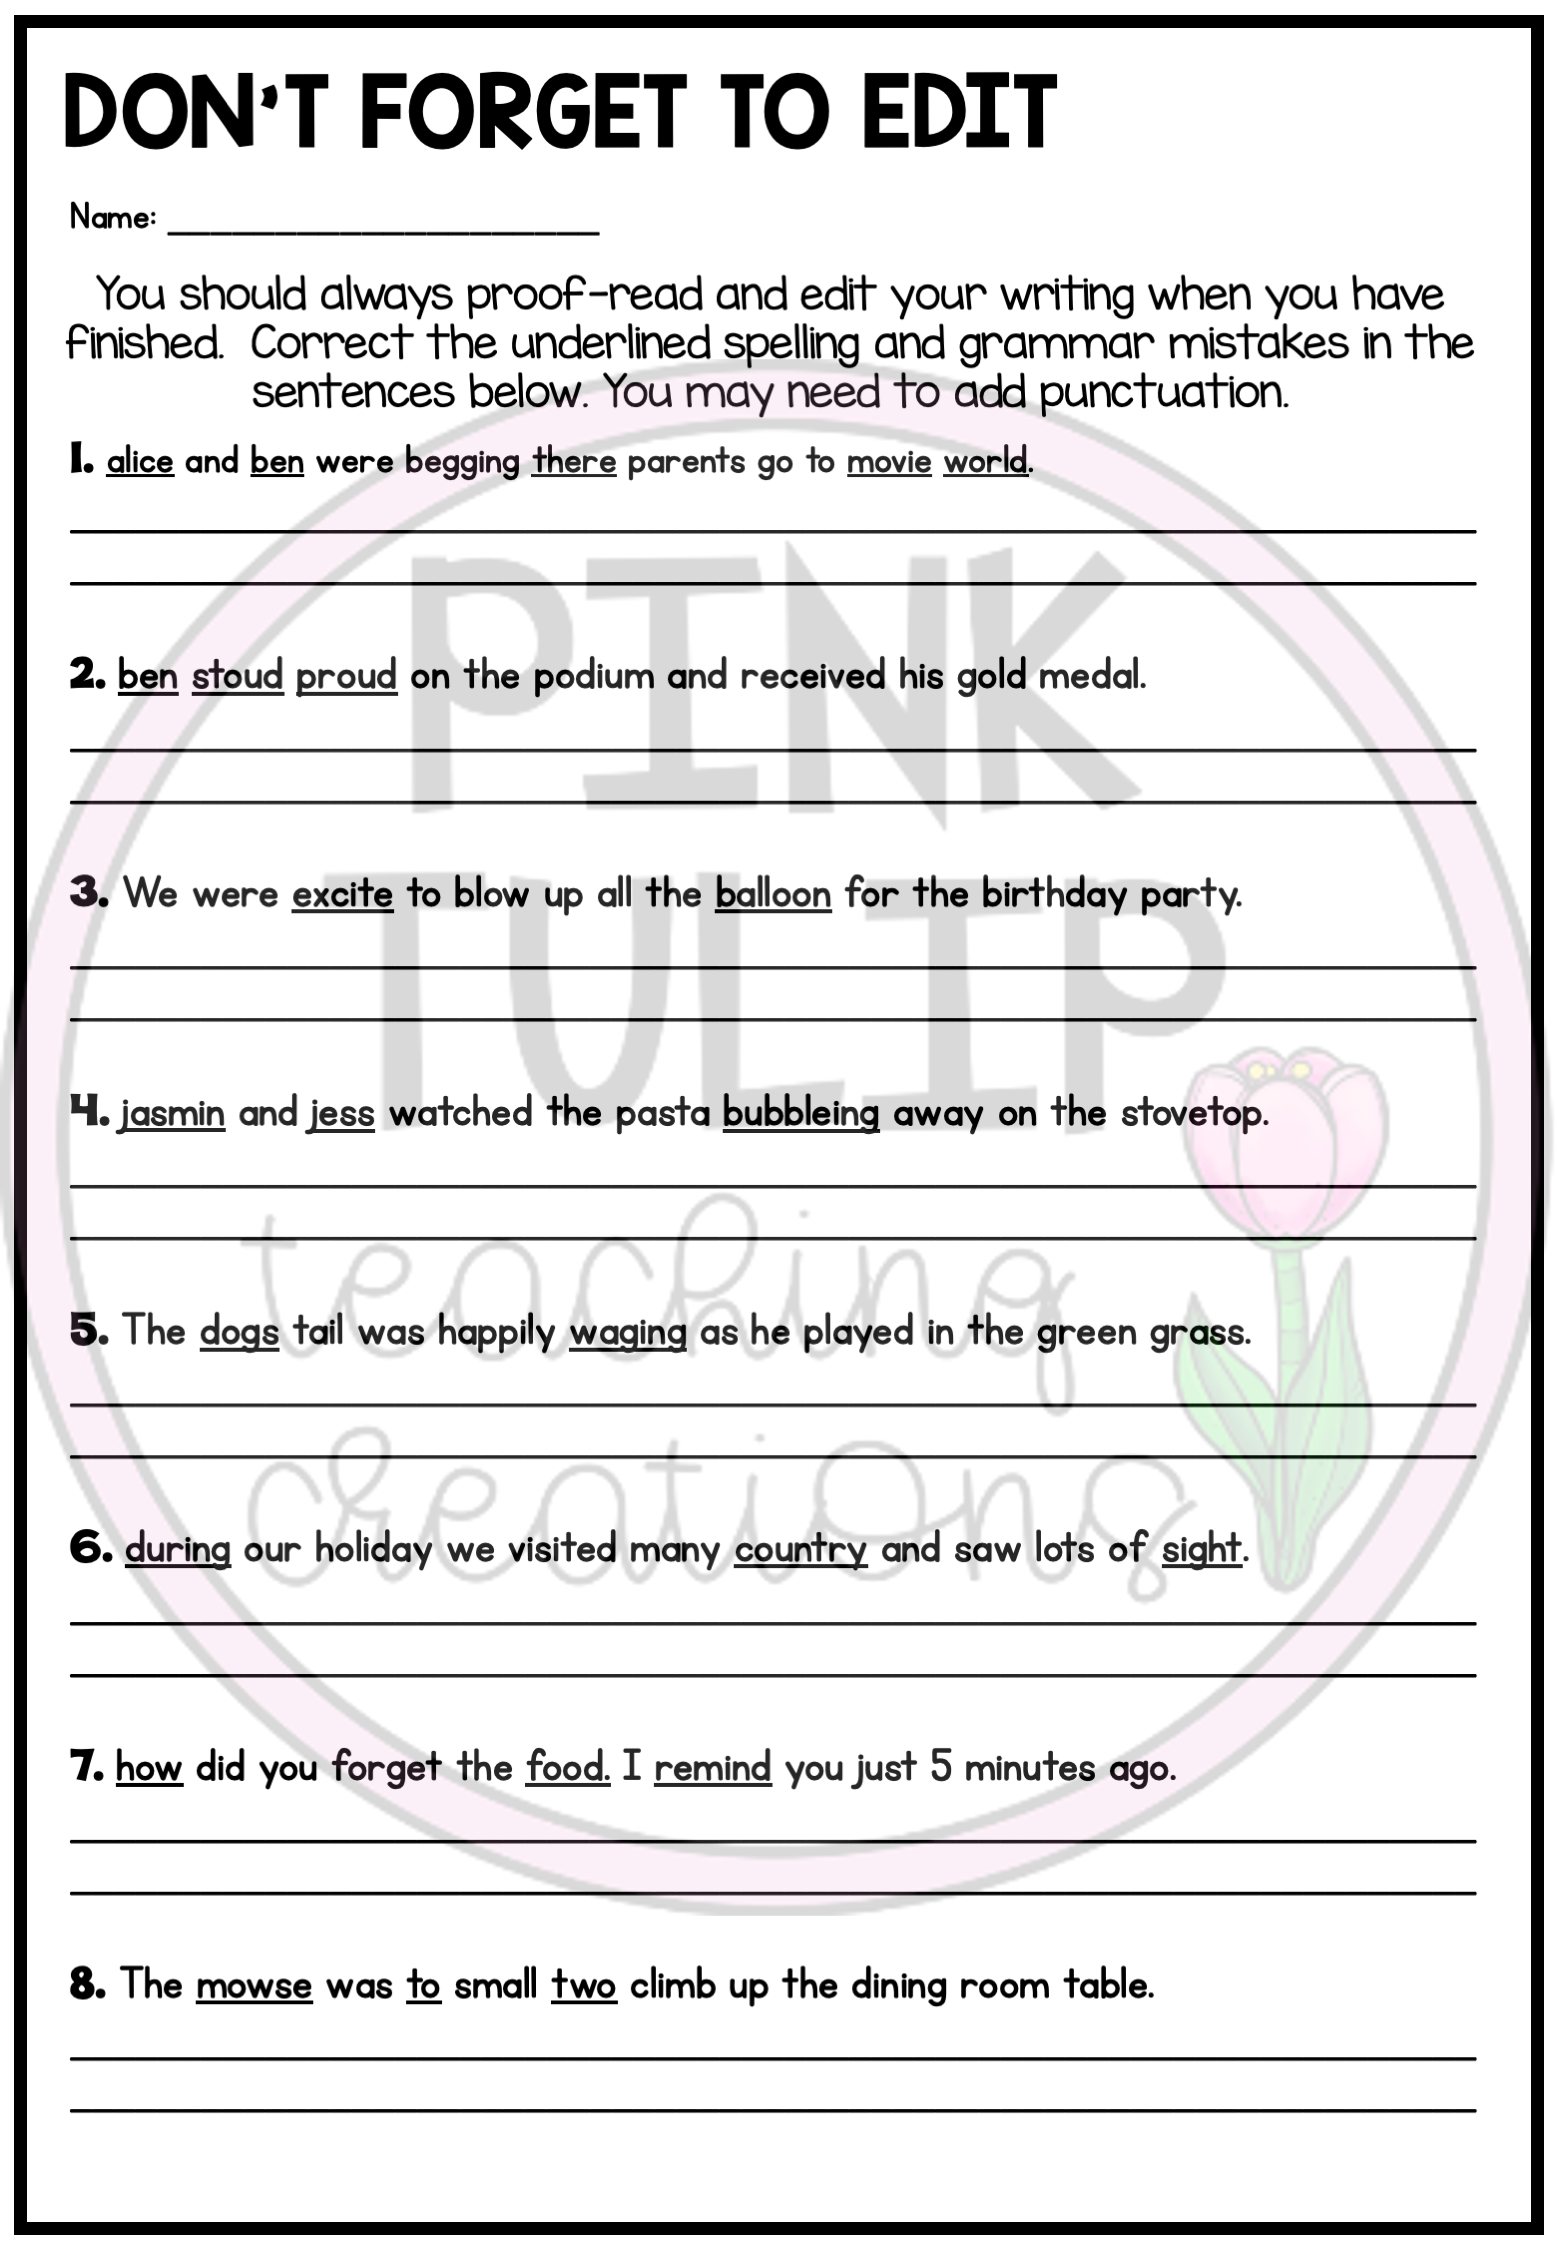 medium resolution of Proofreading And Editing Worksheets Printable   Printable Worksheets and  Activities for Teachers